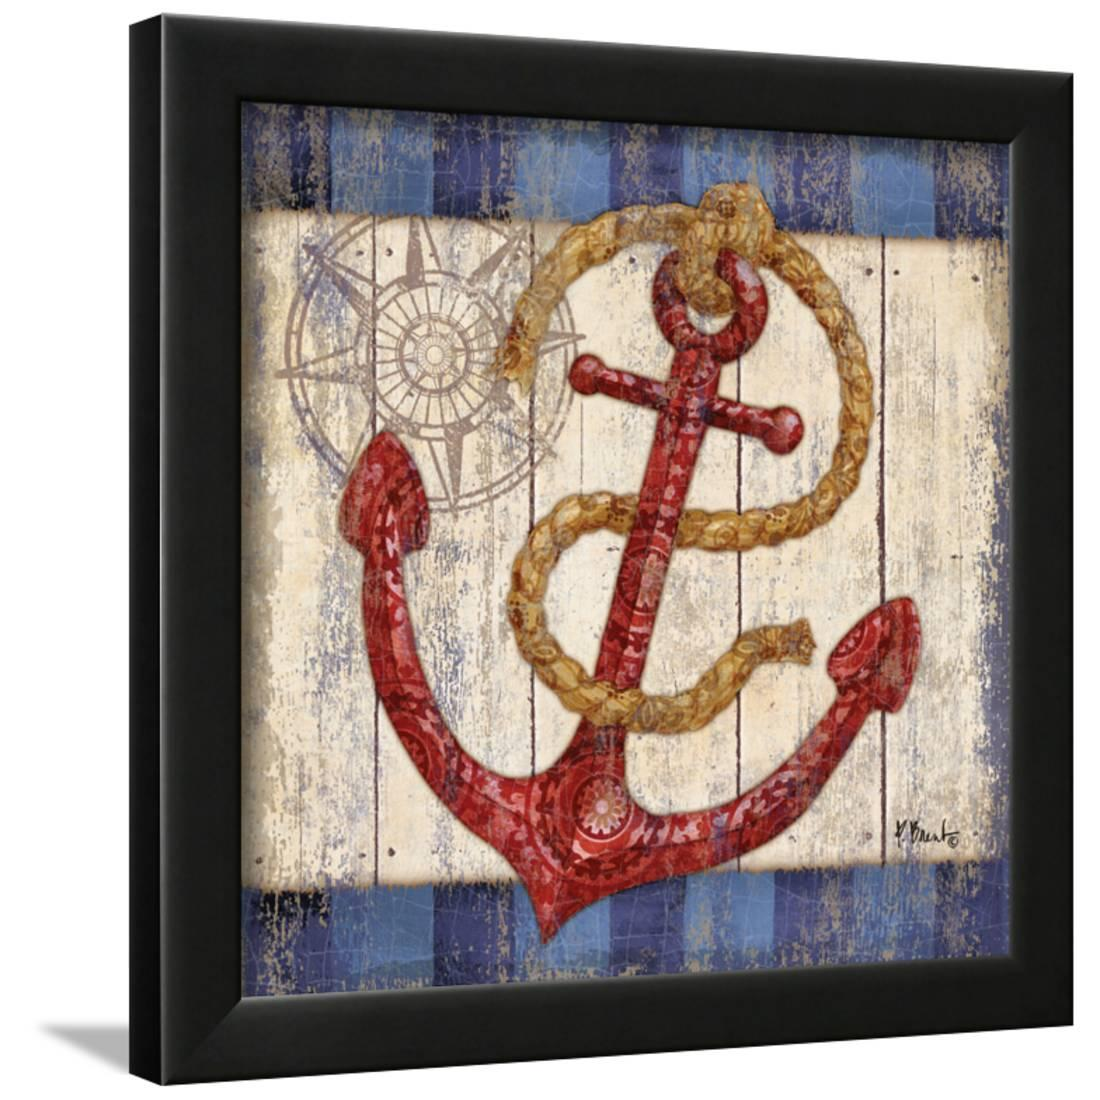 Knotical I Framed Art Print Wall Art By Paul Brent - Walmart.com